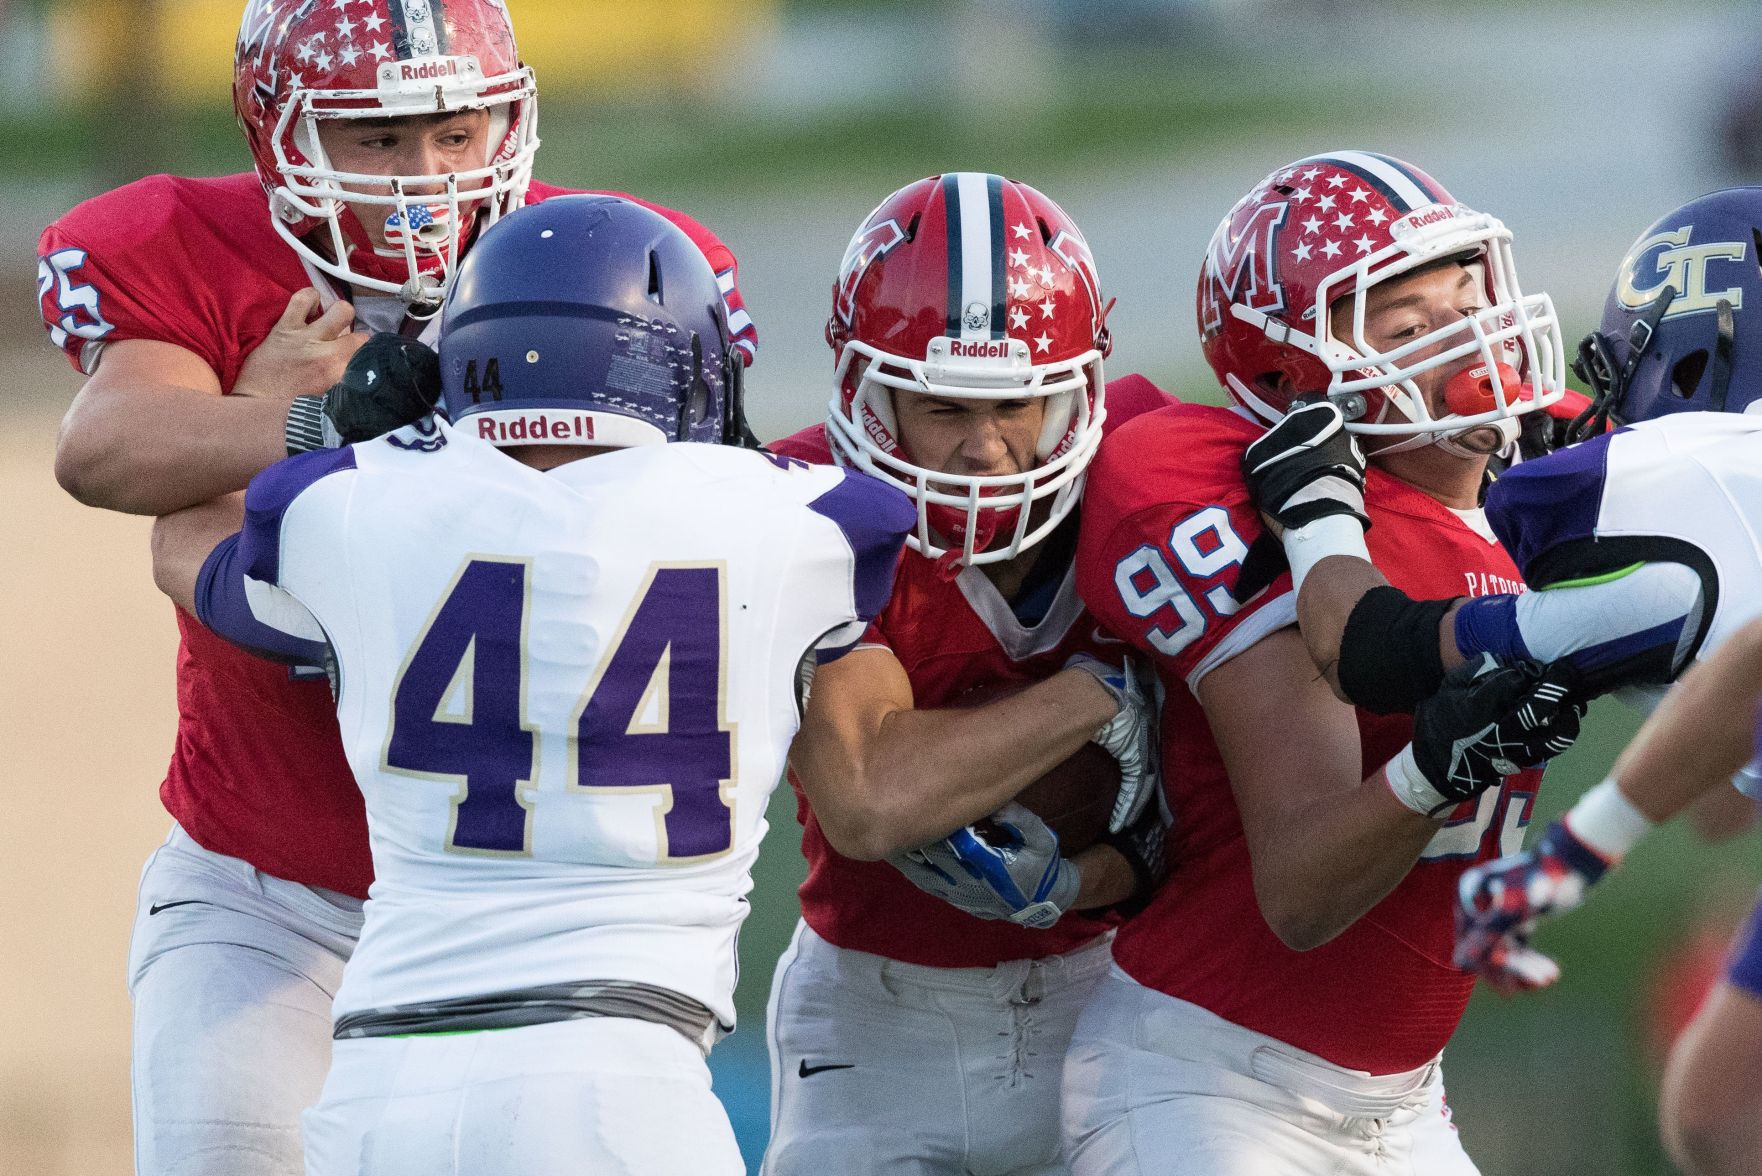 Recruiting report: Kohl Herbolsheimer's future likely on the defensive line